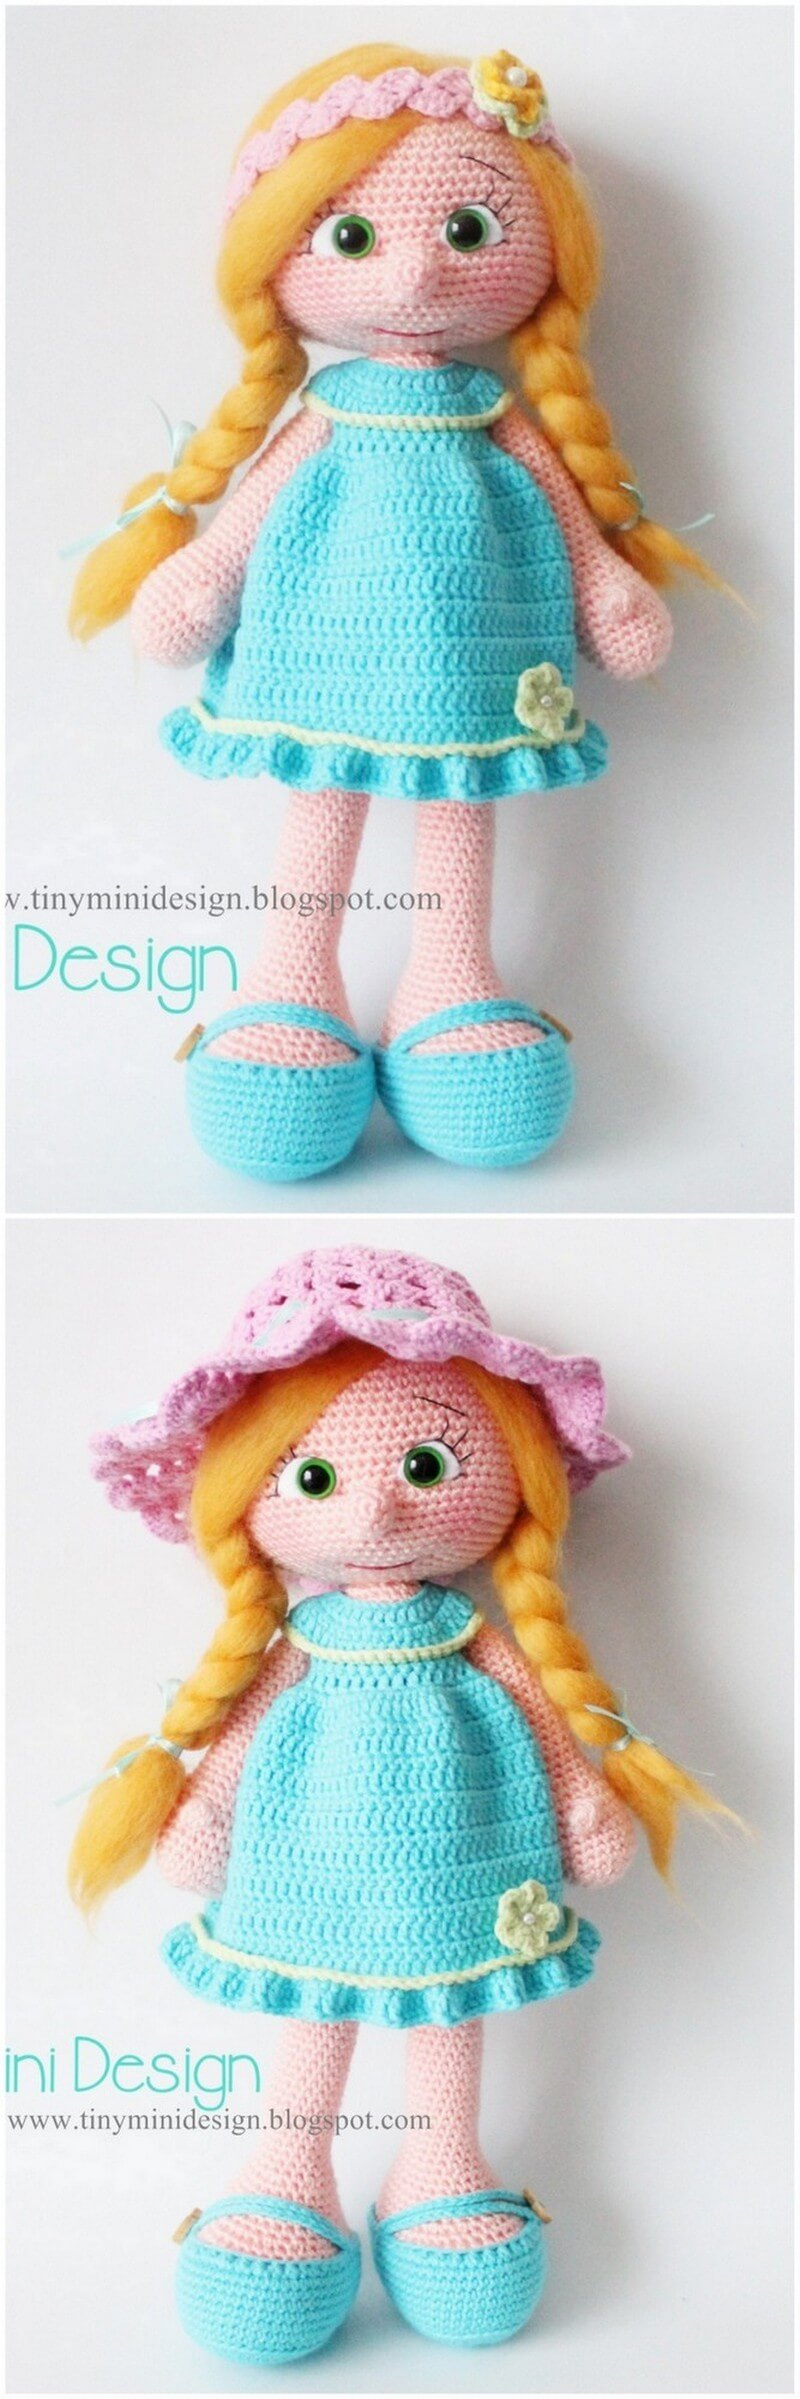 Crochet Amigurumi Doll Pattern (23)